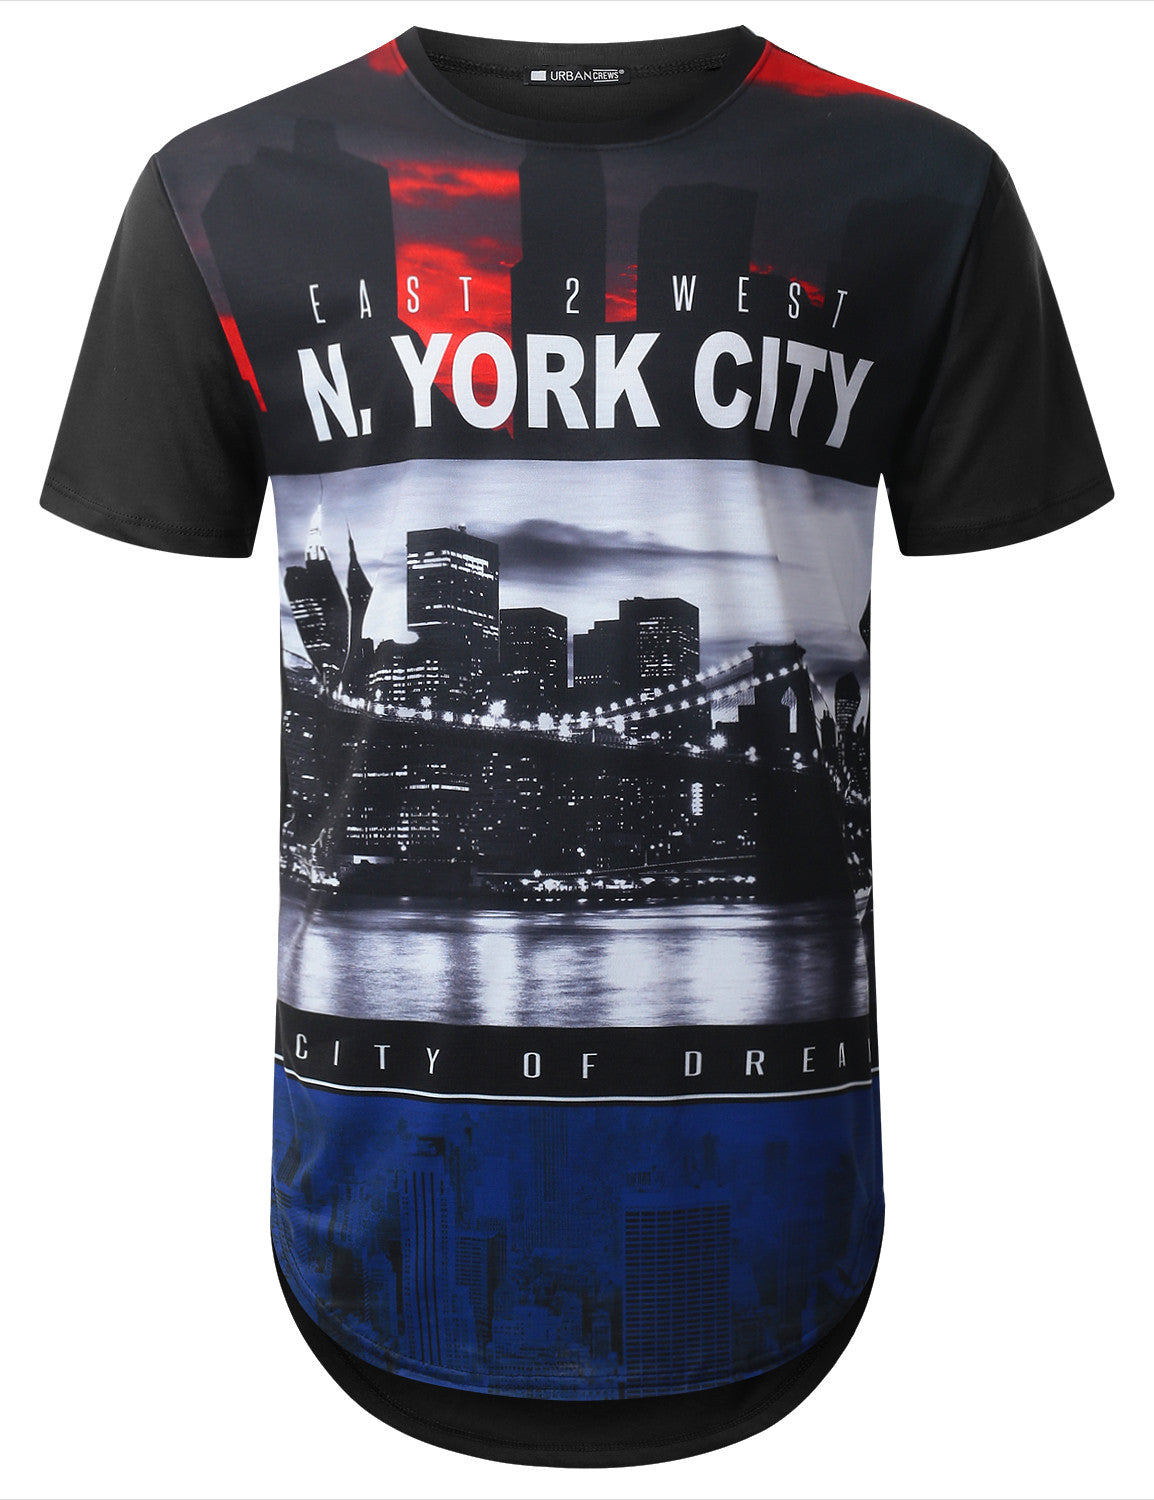 BLACK East West NY City Longline T-shirt - URBANCREWS